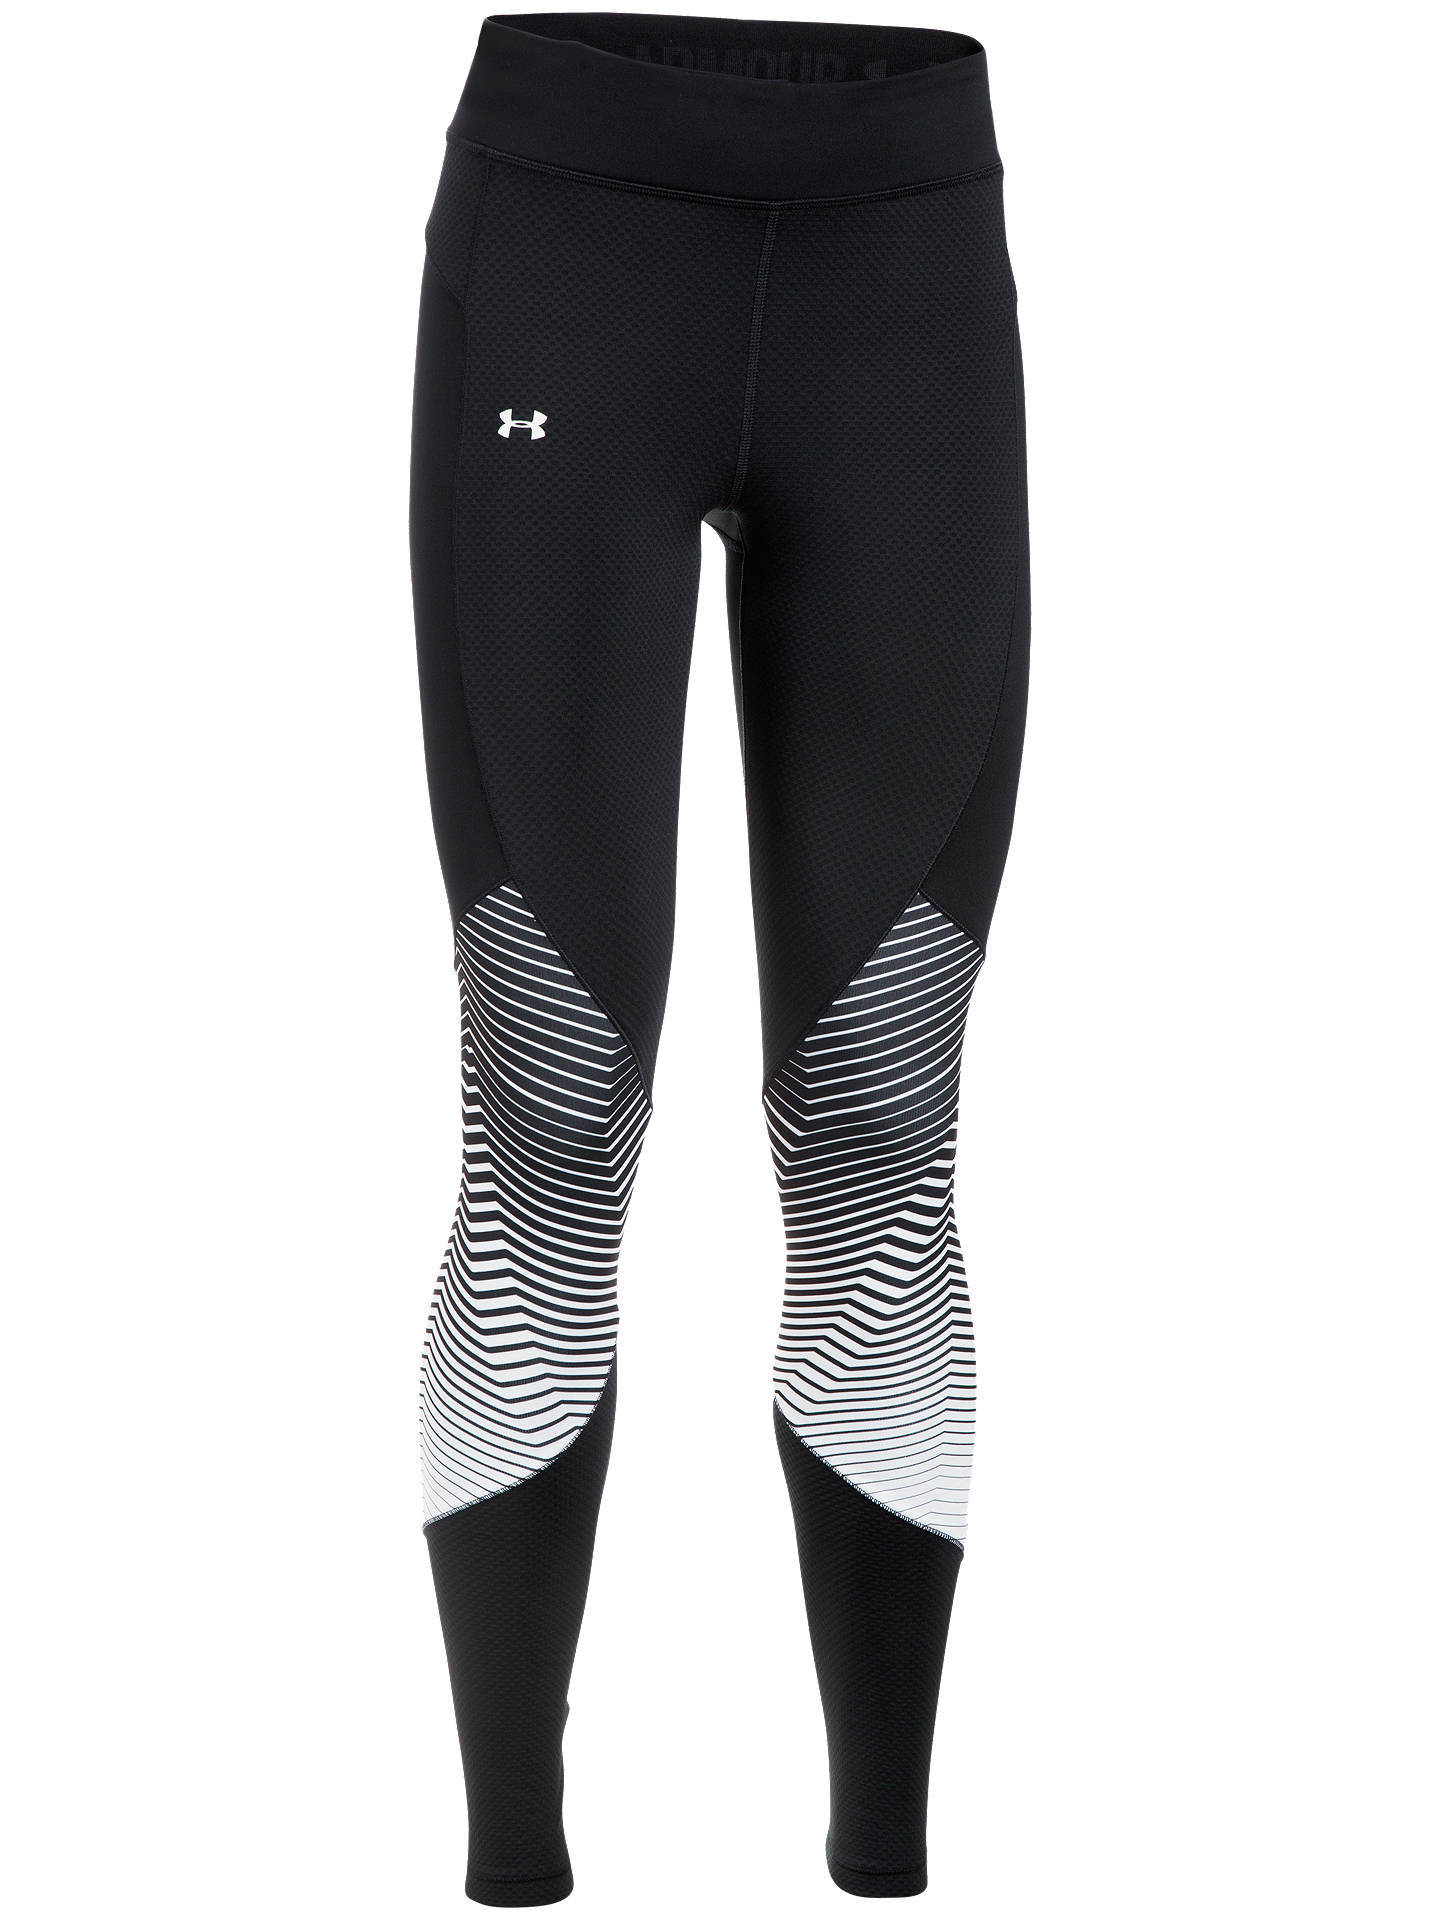 41161fd6a1ca8b ... Buy Under Armour ColdGear Reactor Running Tights, Black, XS Online at  johnlewis.com ...